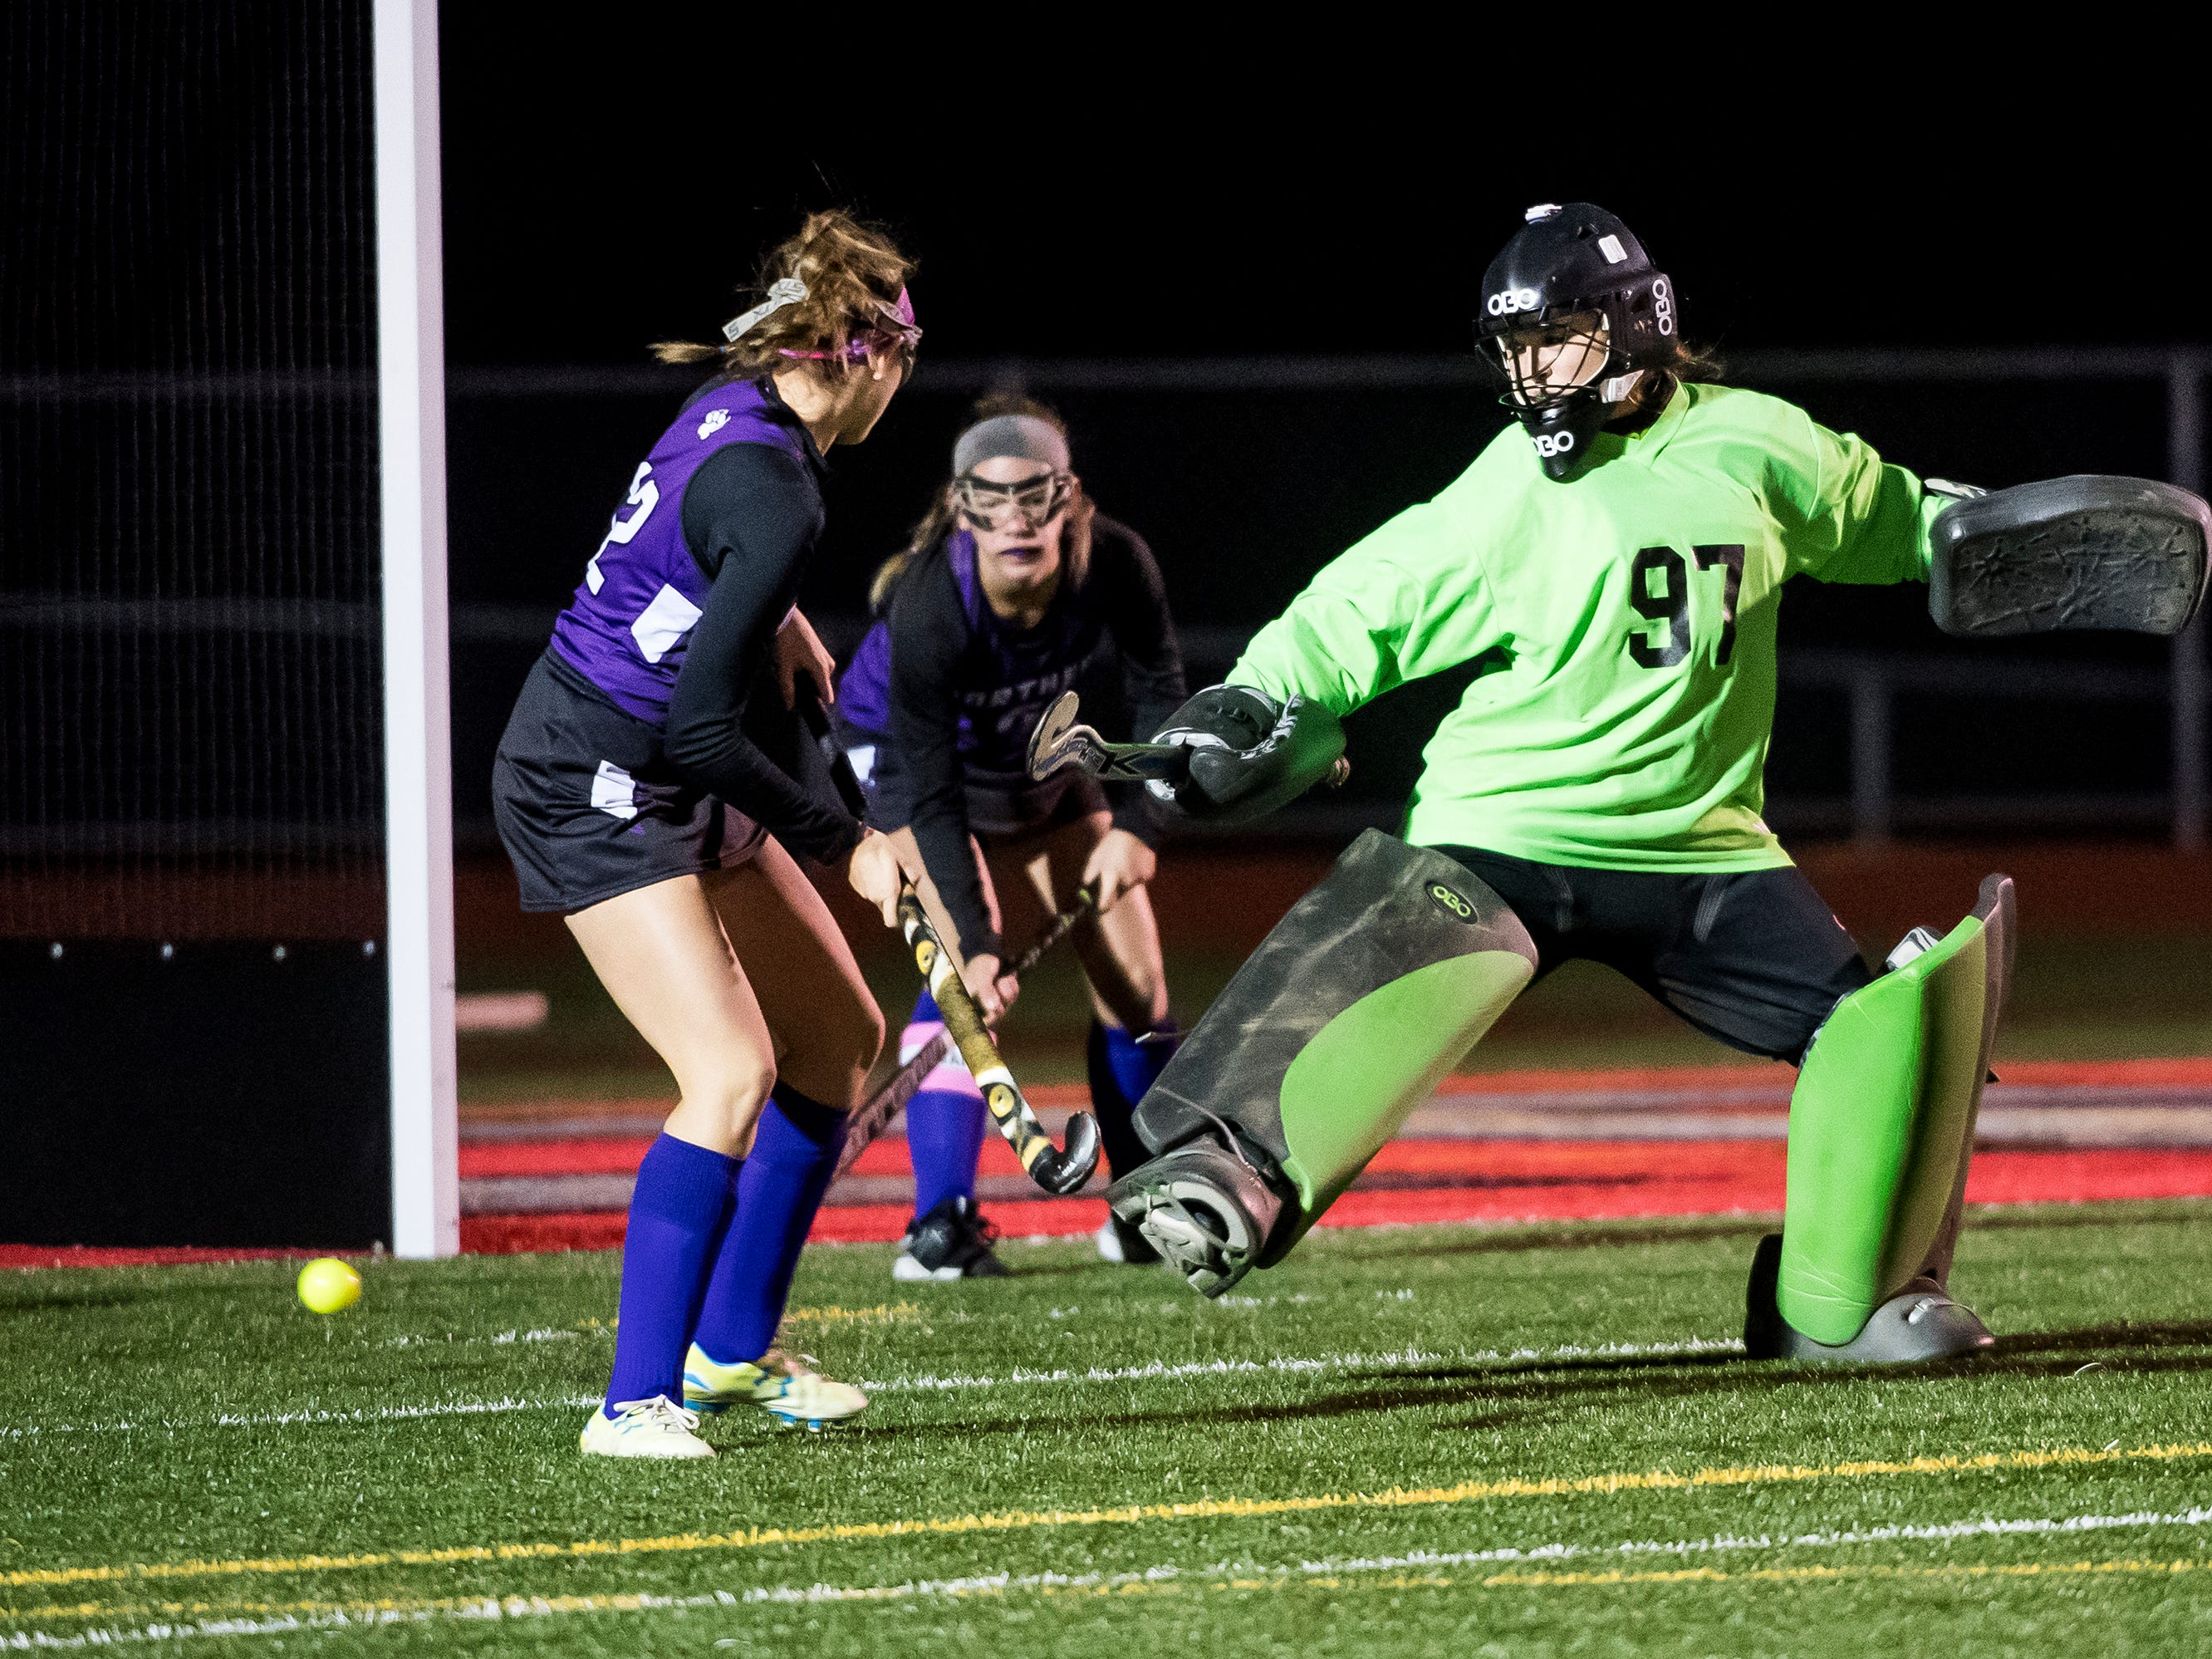 A shot from South Western rolls past Northern goal keeper Kasey Davis during a PIAA District III first round game at Bermudian Springs High School on Wednesday, October 24, 2018. The Mustangs fell 4-2.